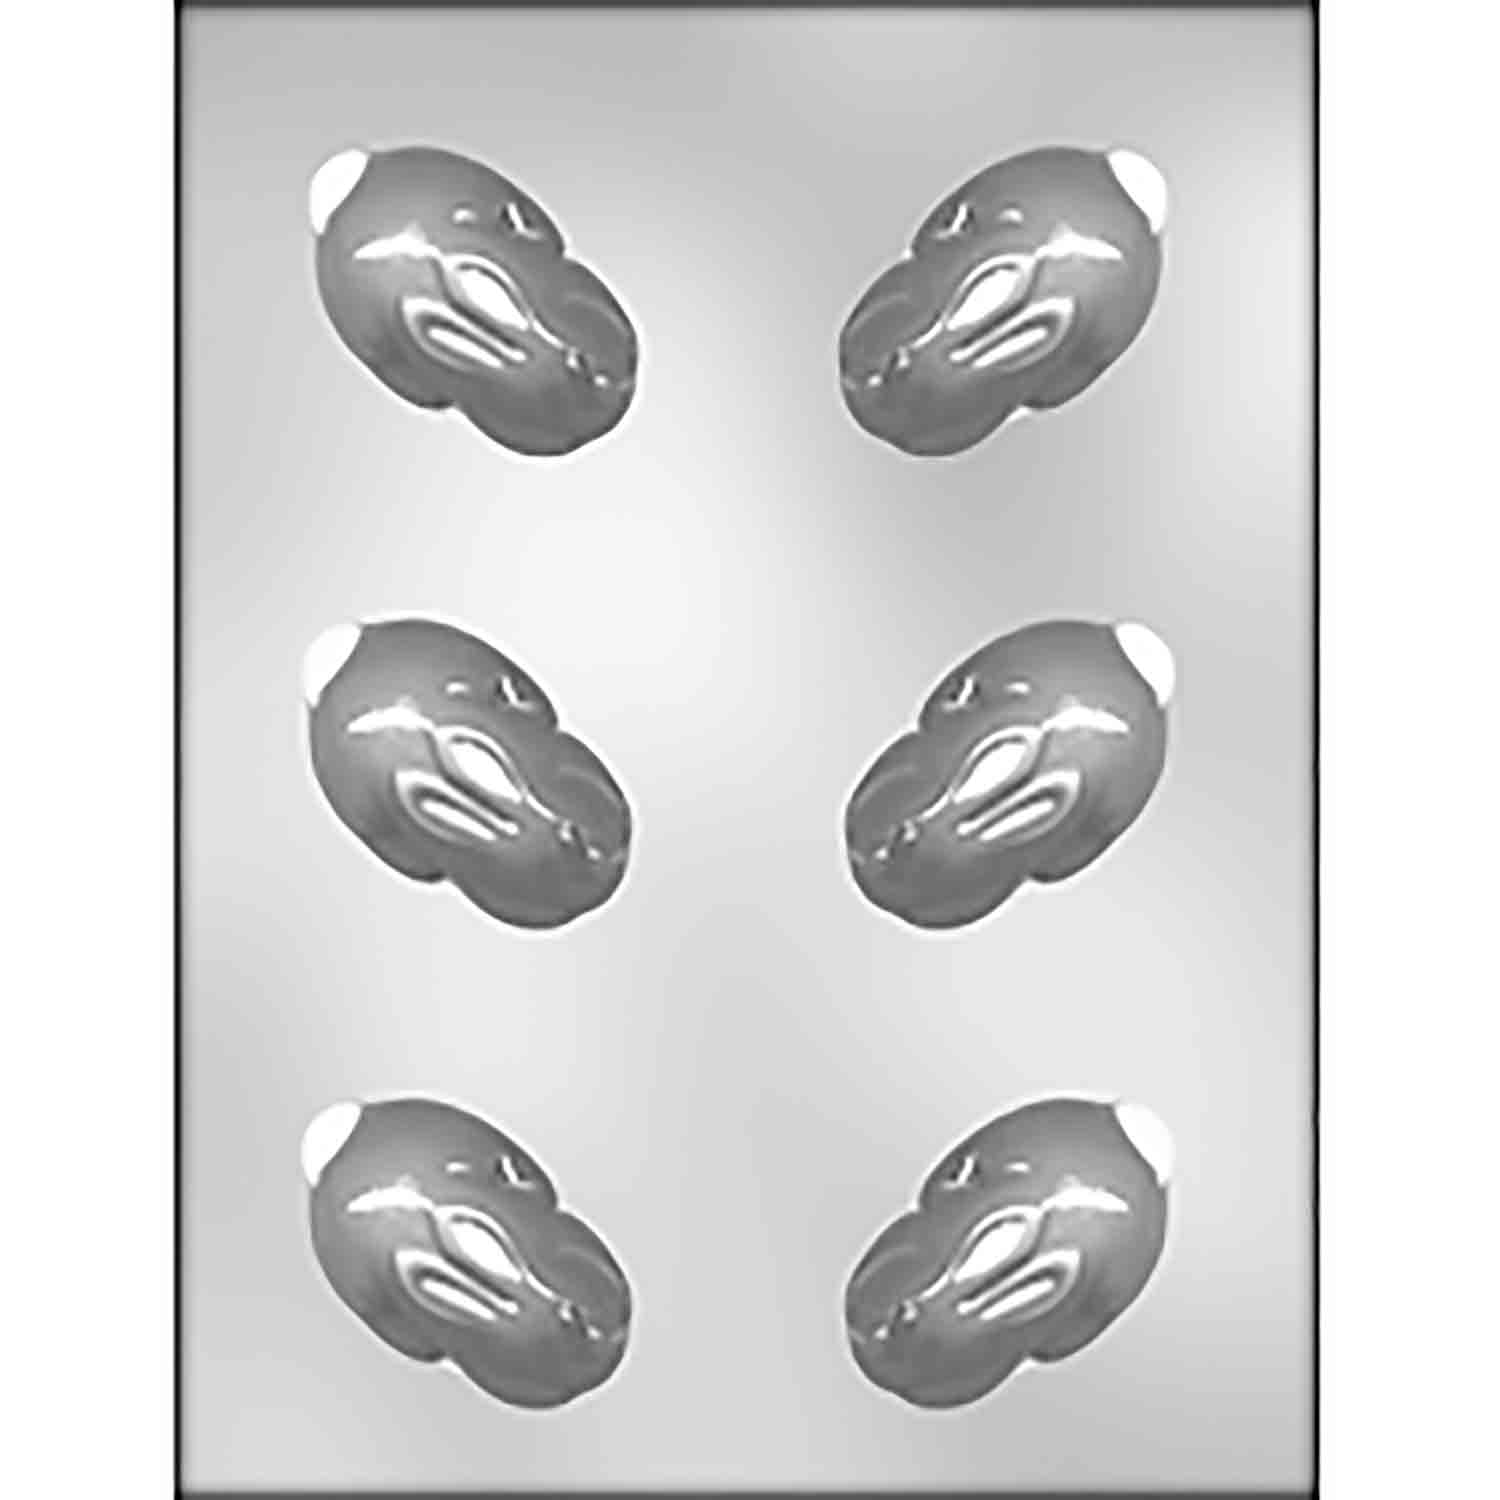 3D Huddled Bunny Chocolate Candy Mold